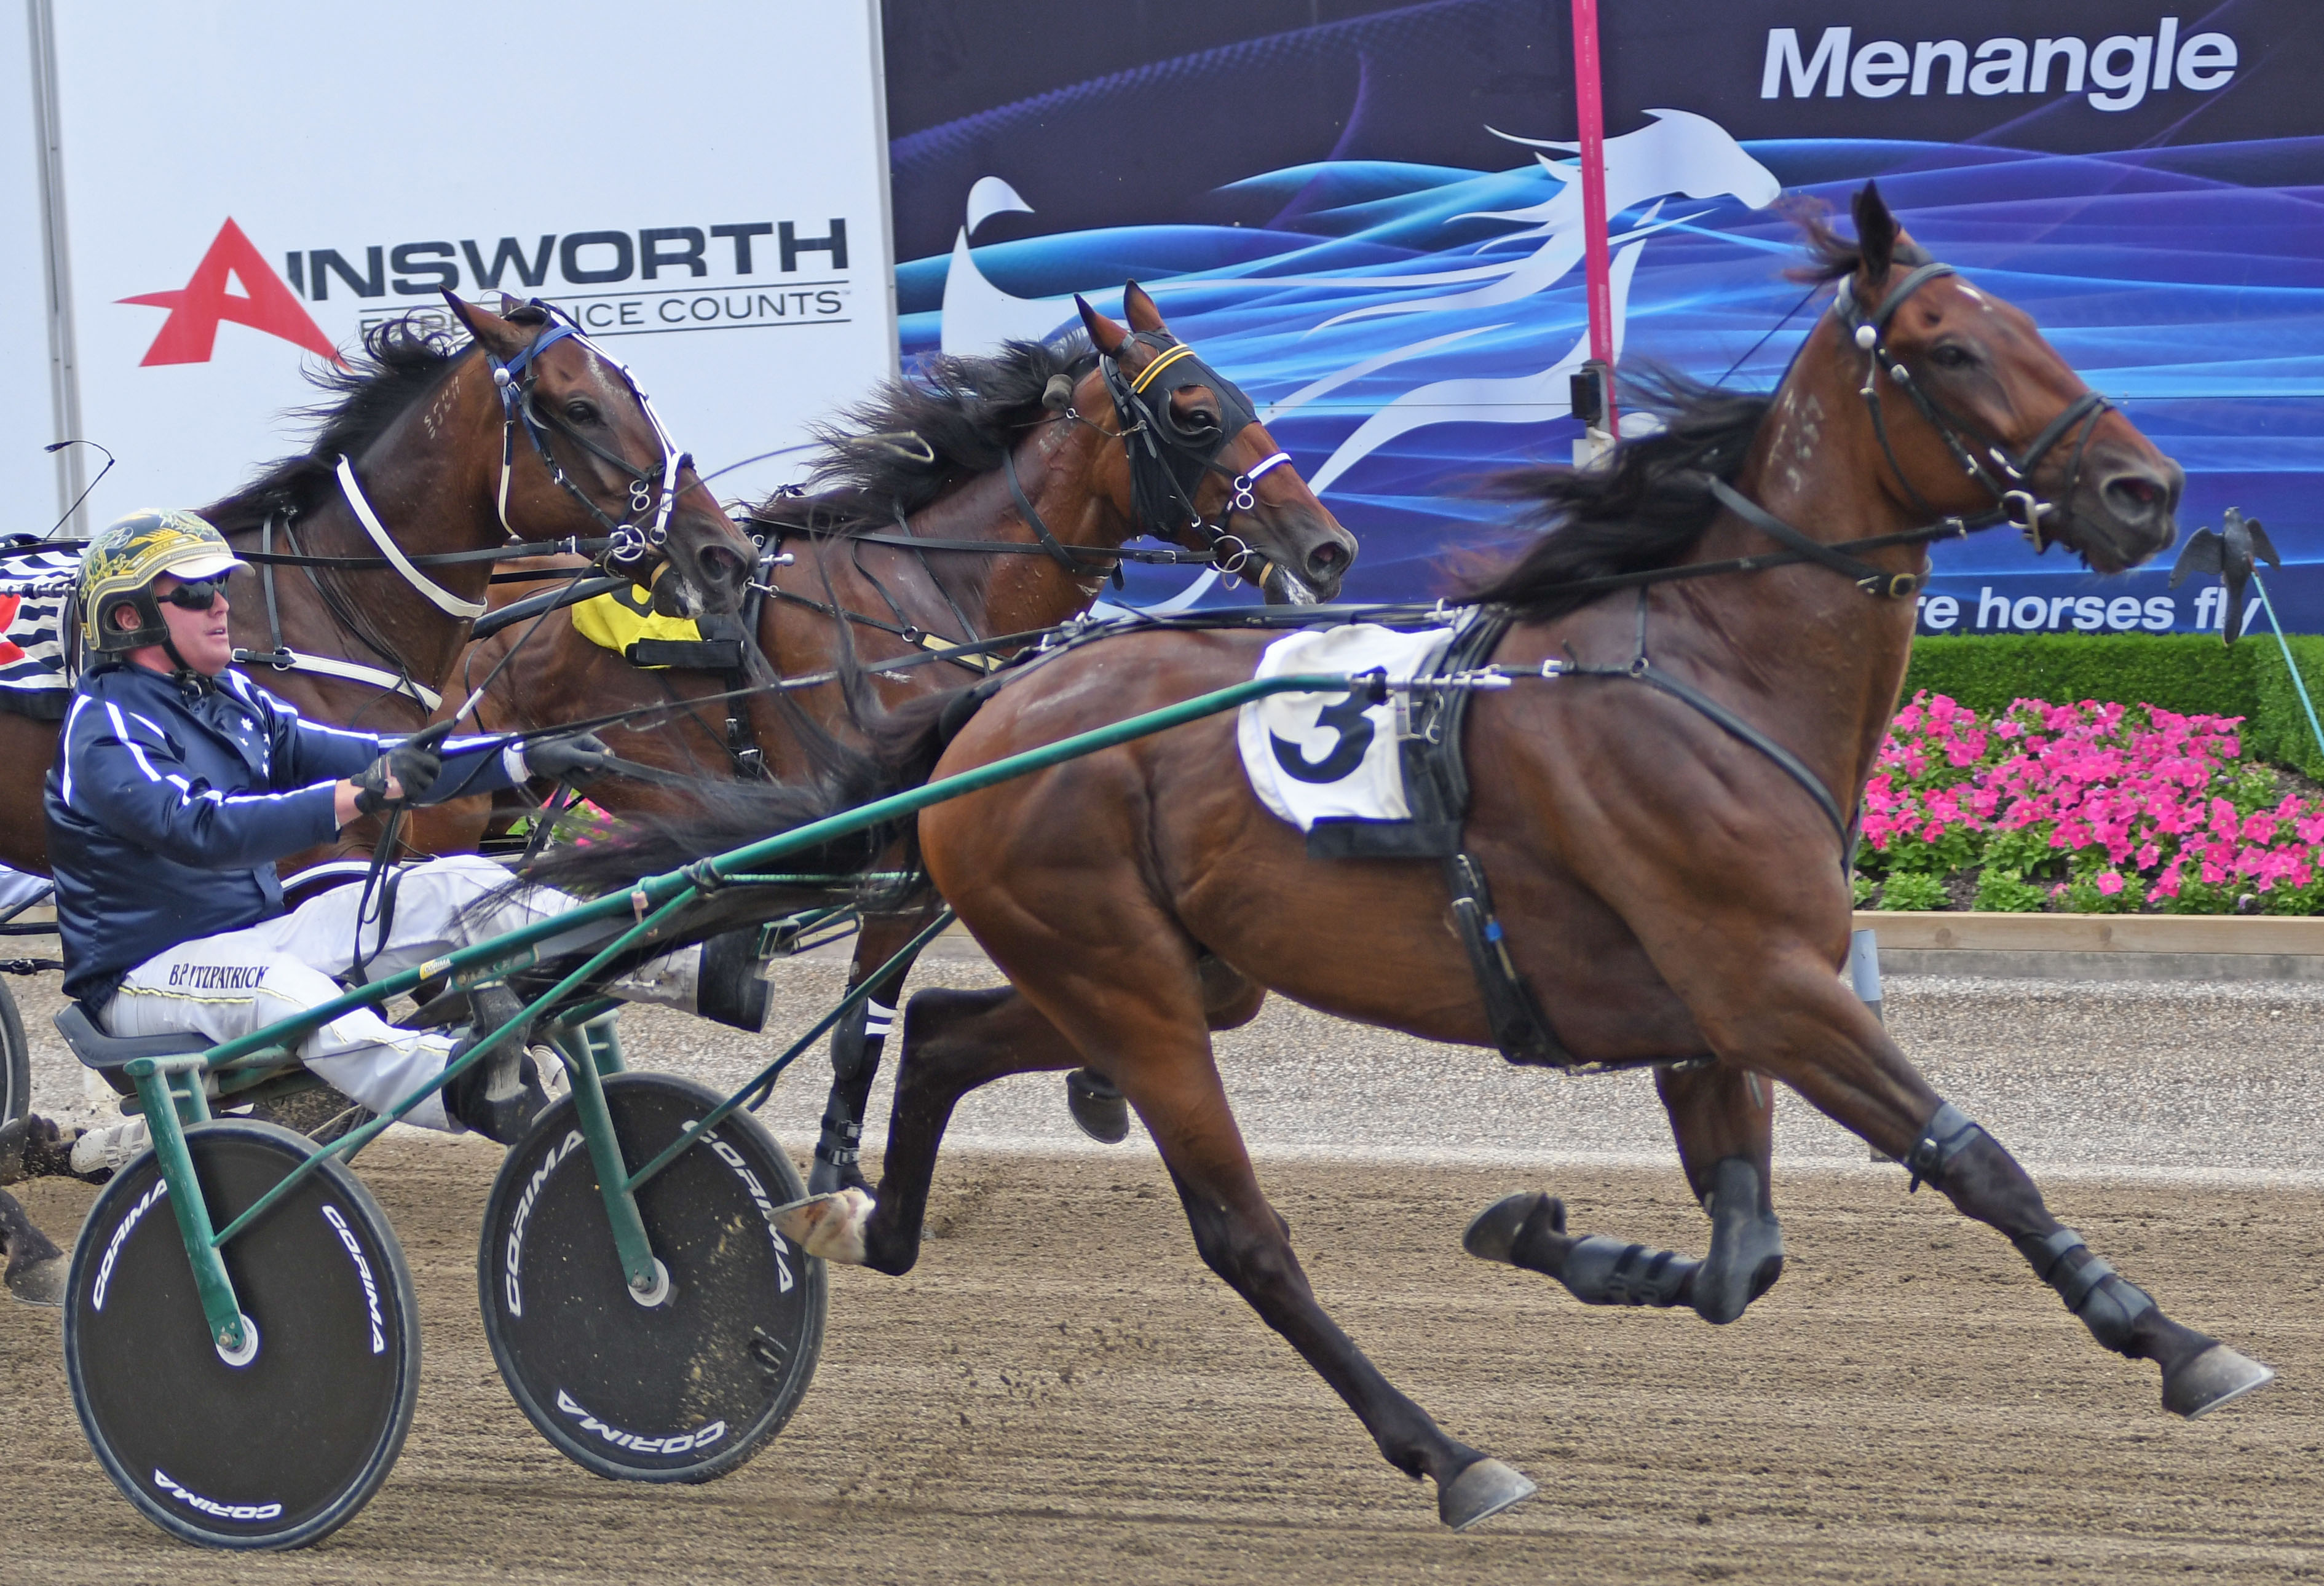 Butt brothers set for field day at Menangle